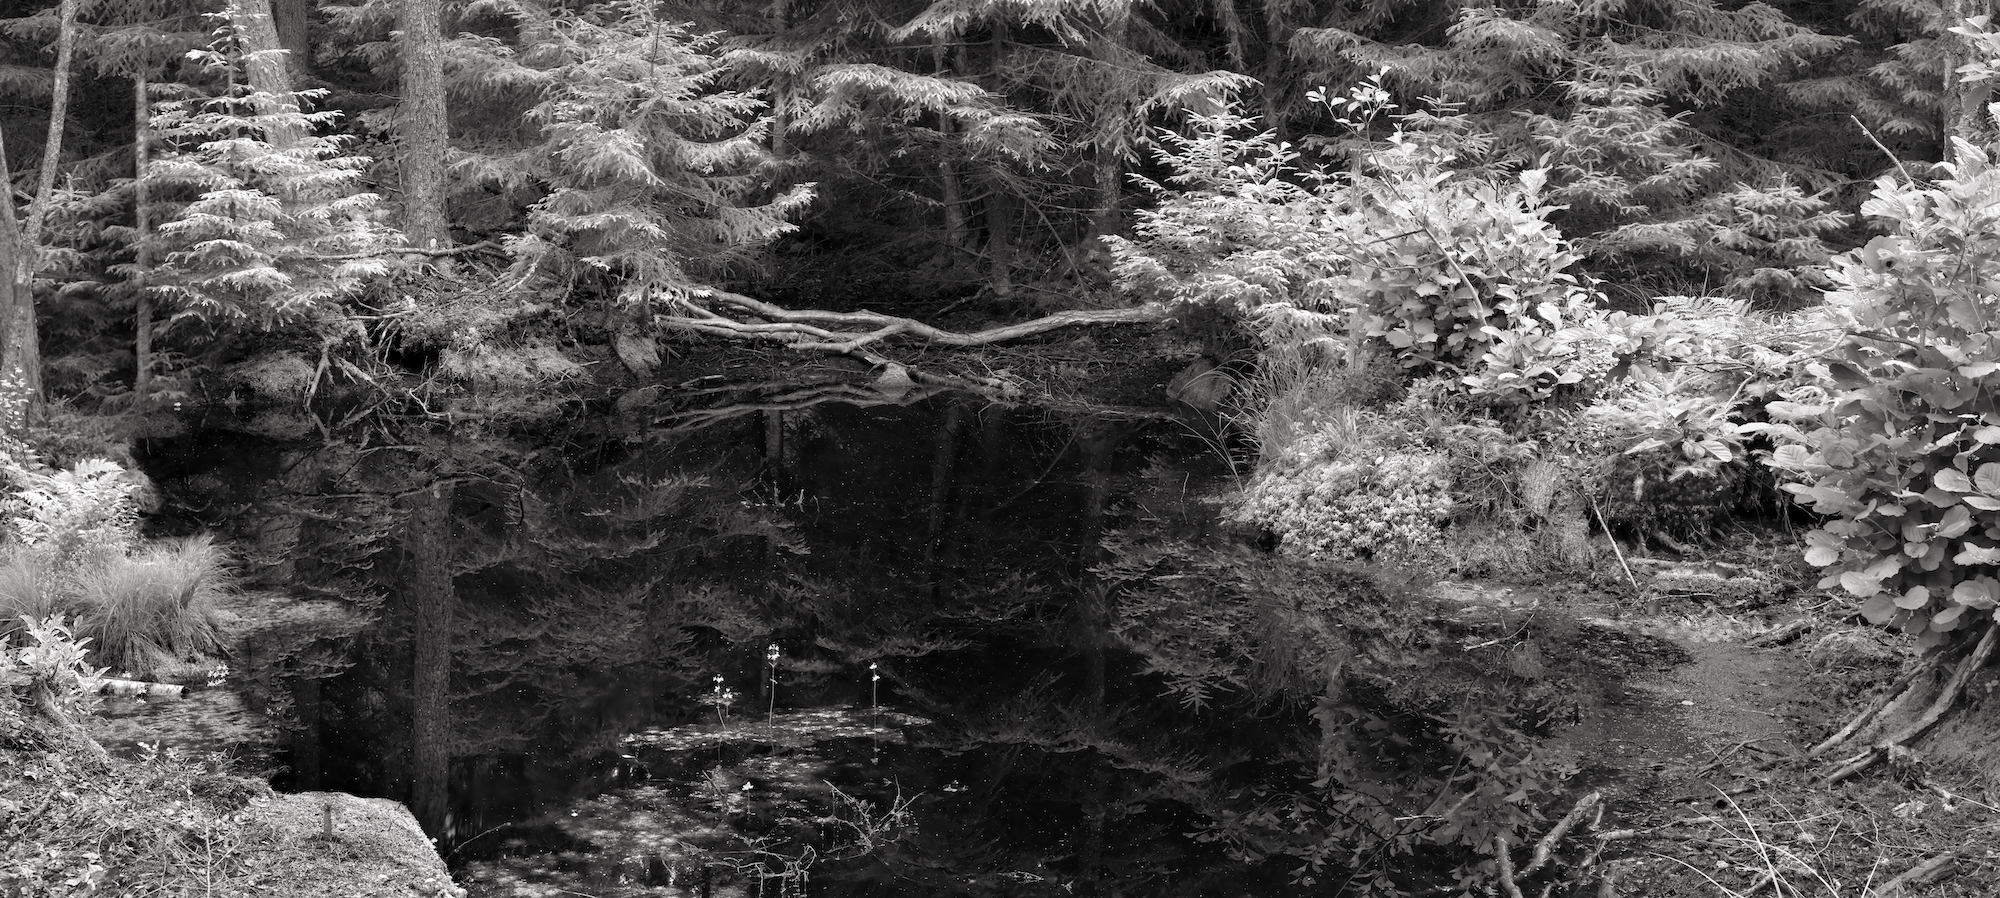 Lovisa Ringborg, Forest, 2020, Silver gelatin print mounted on aluminium, museum glass, walnut frame, 88 x 193,5 cm, edition of 5